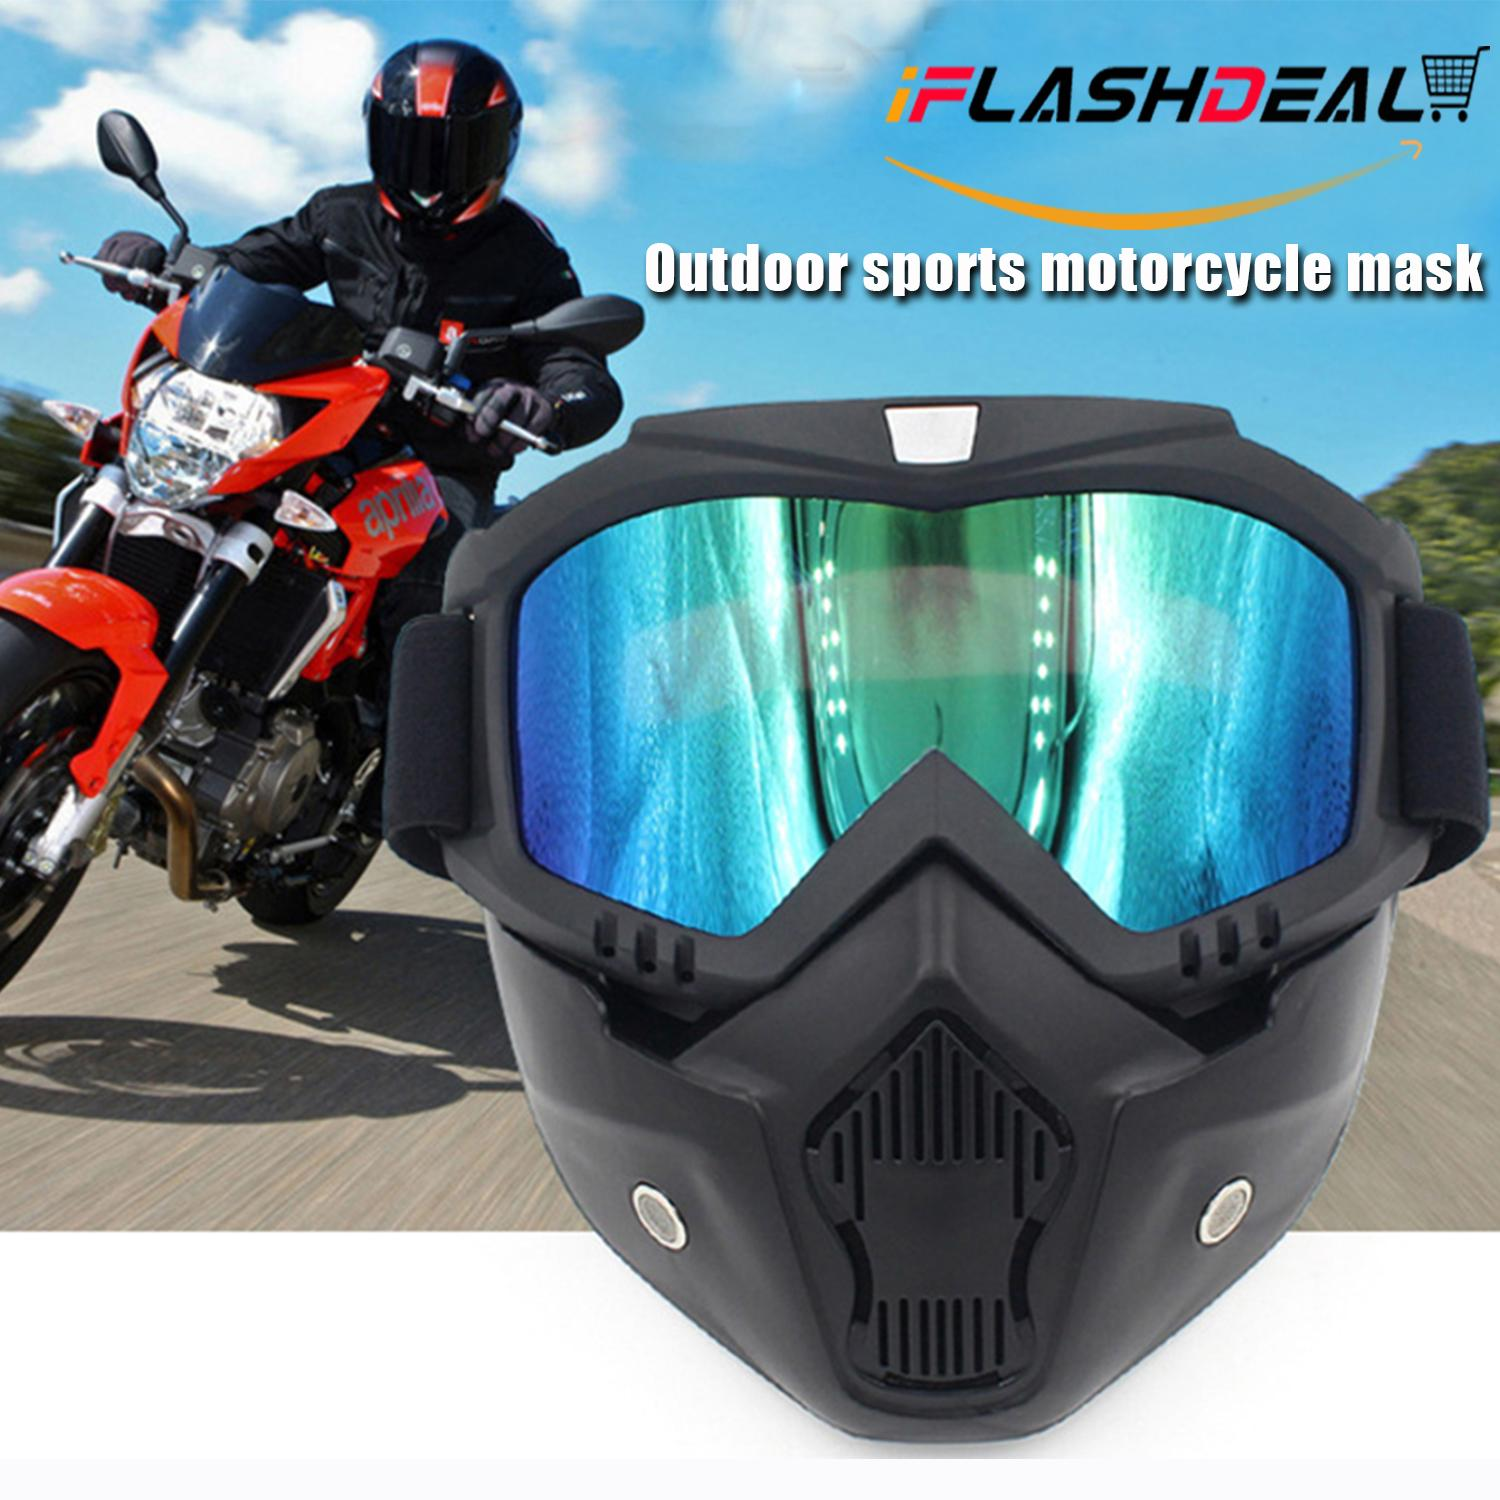 Iflashdeal Detachable Uni Mask With Motorcycle Goggles And Mouth Filter Face Masks Protect Padding Helmet Bike Bicycle Sunglasses By Iflashdeal.